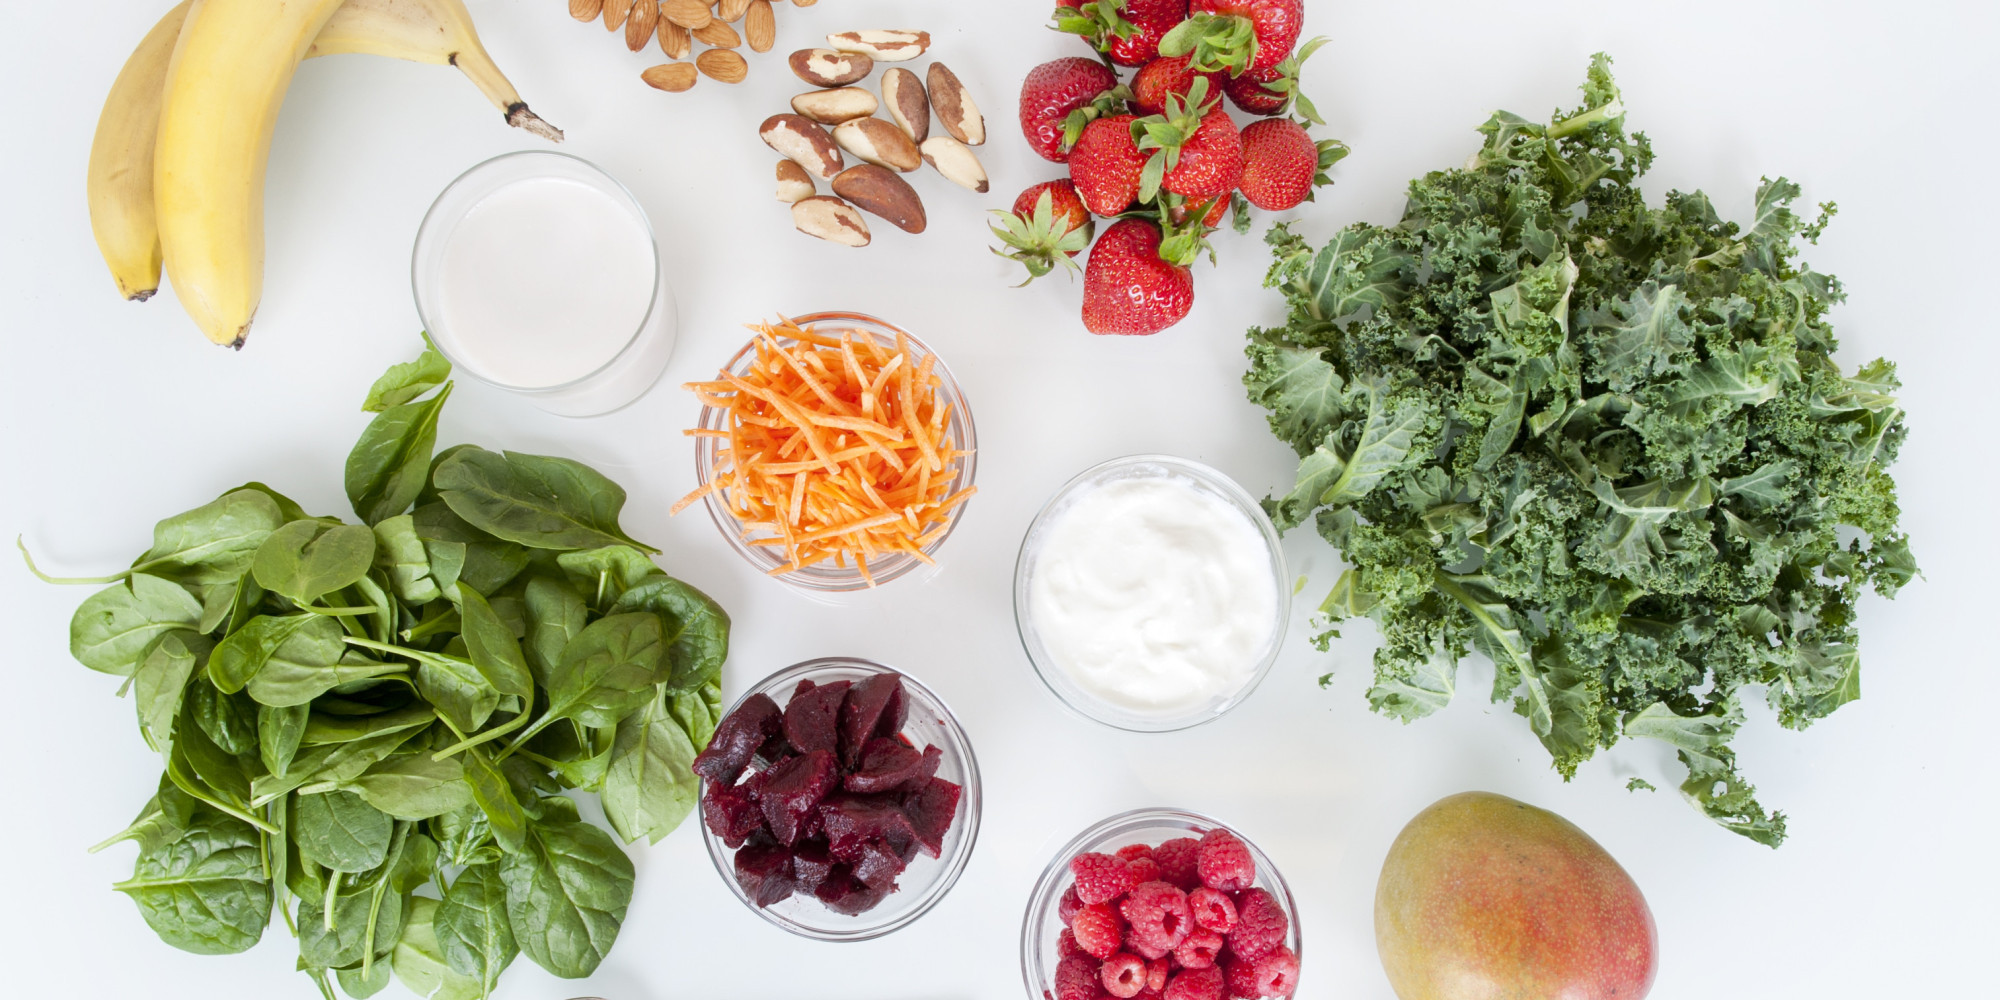 Healthy Smoothies That Taste Good  5 Healthy Smoothies Nutrition Experts Swear By And They